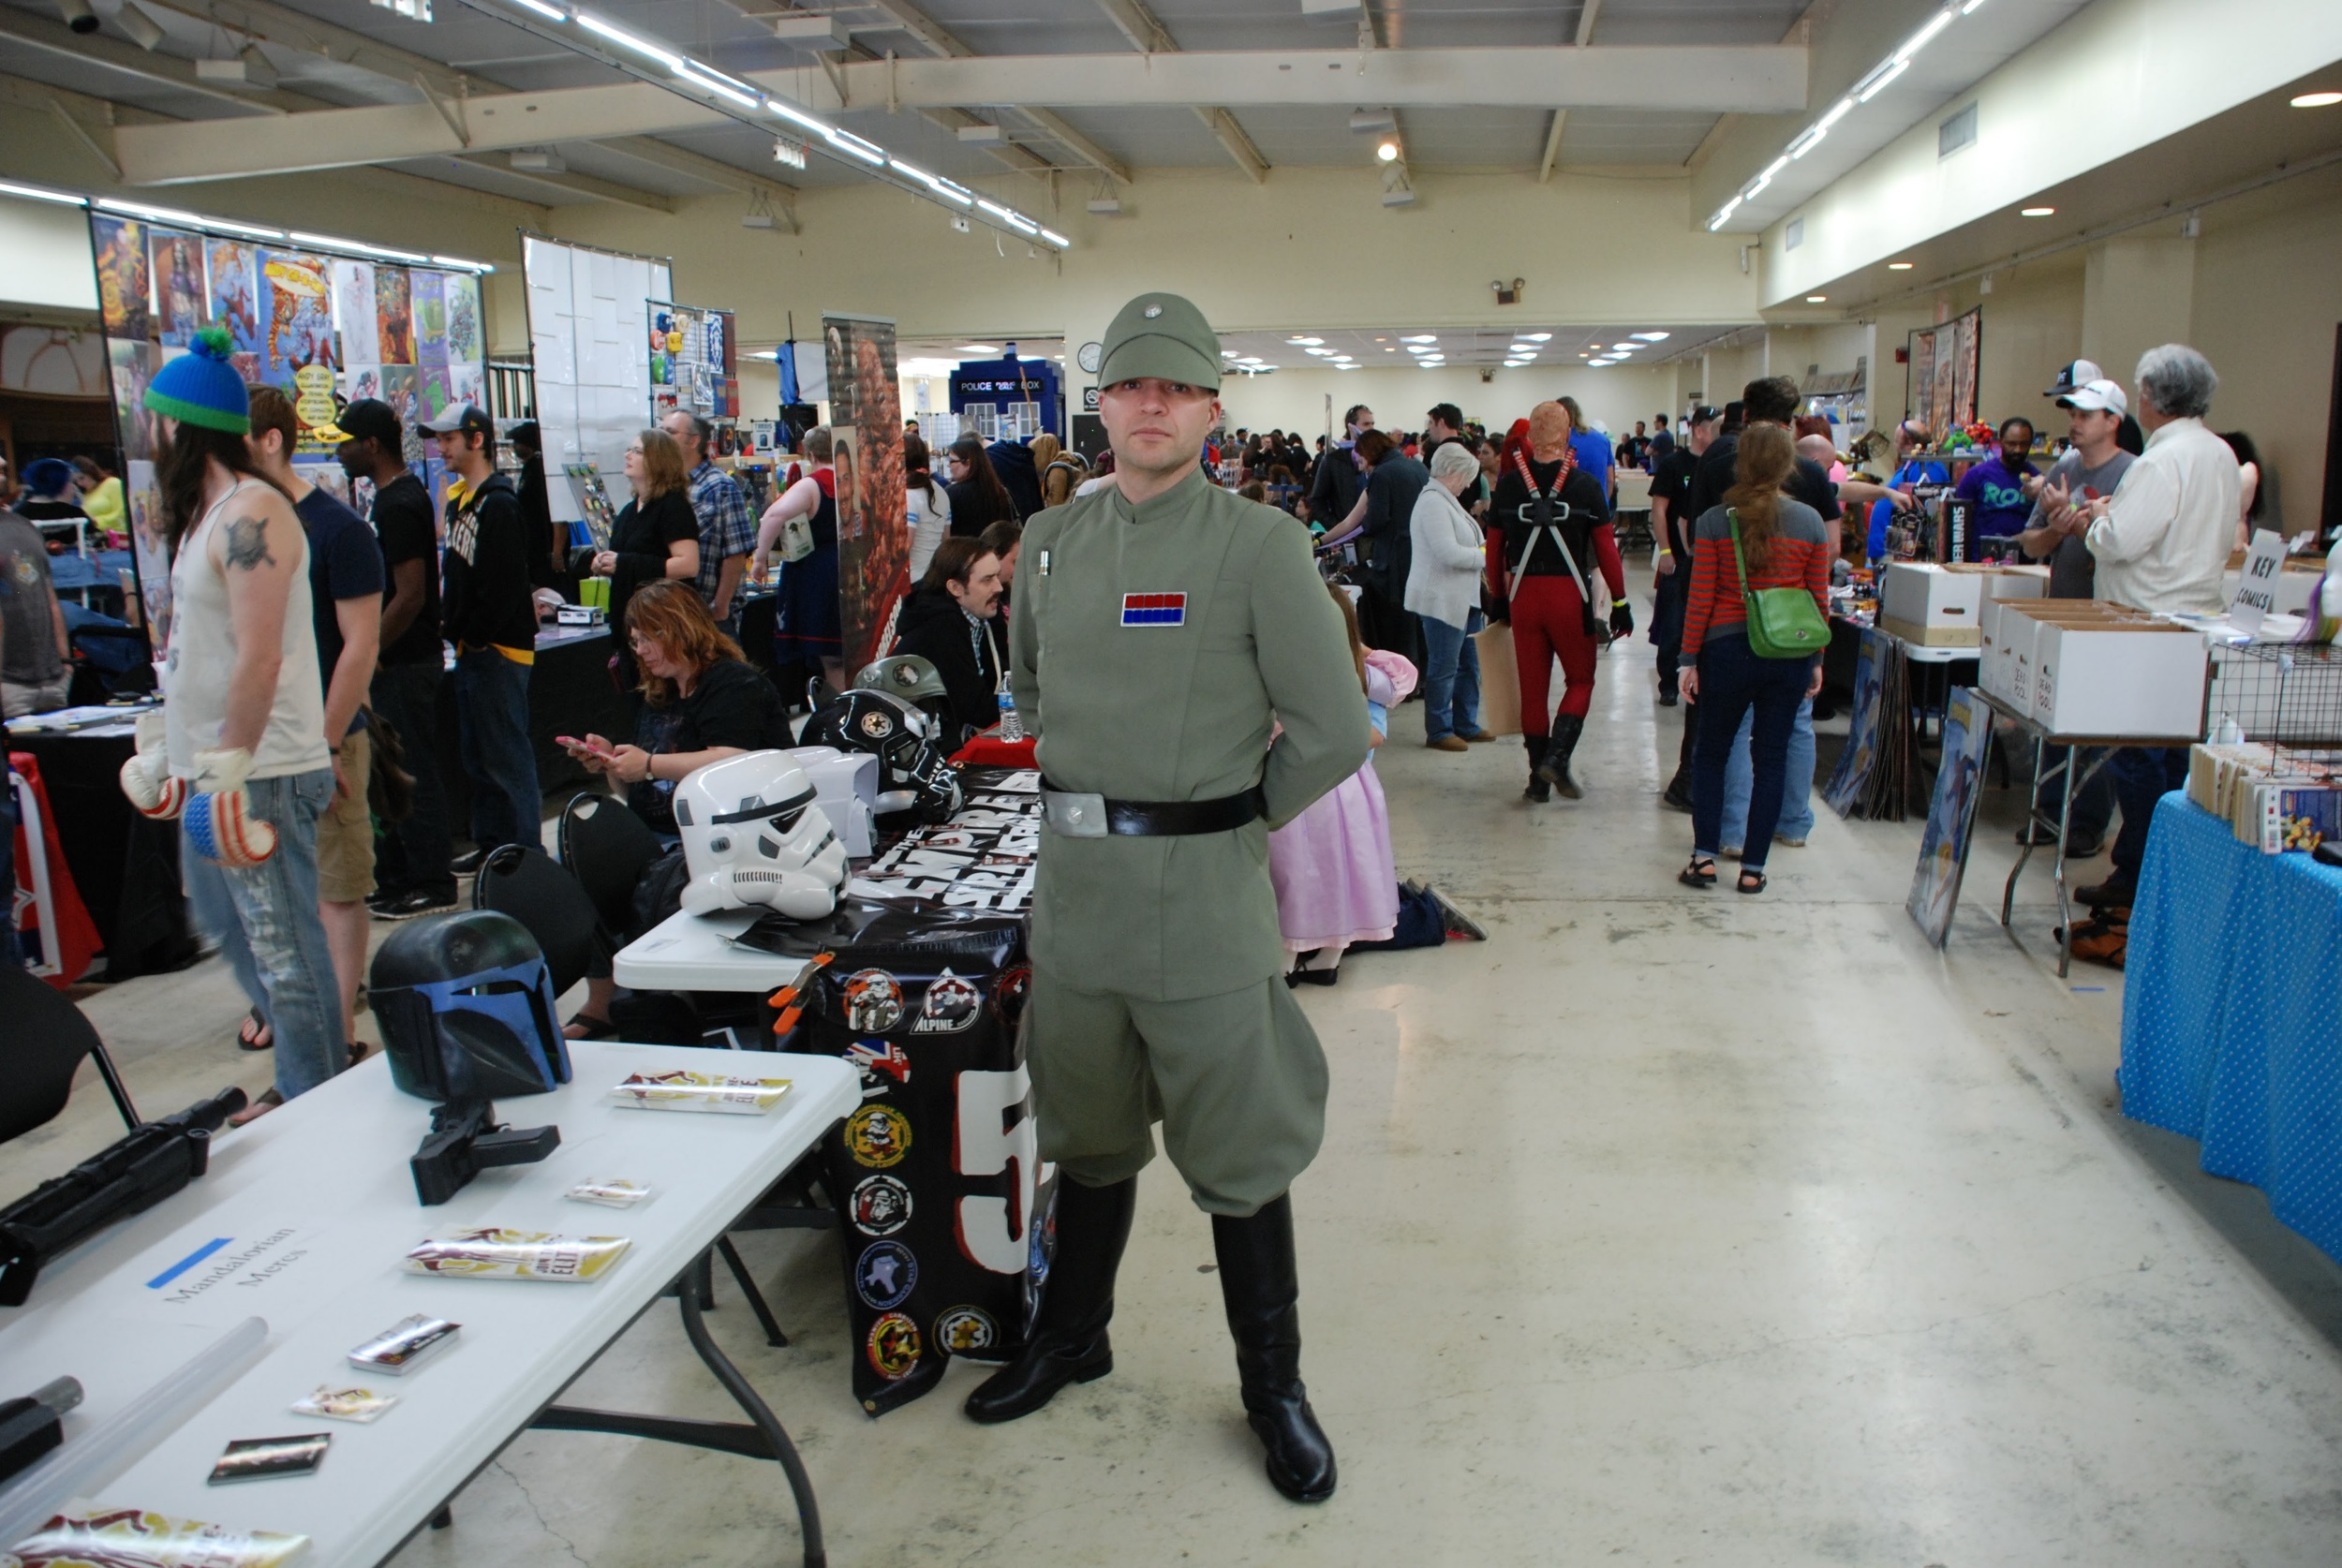 An Imperial Officer verifying that everything is running smoothly